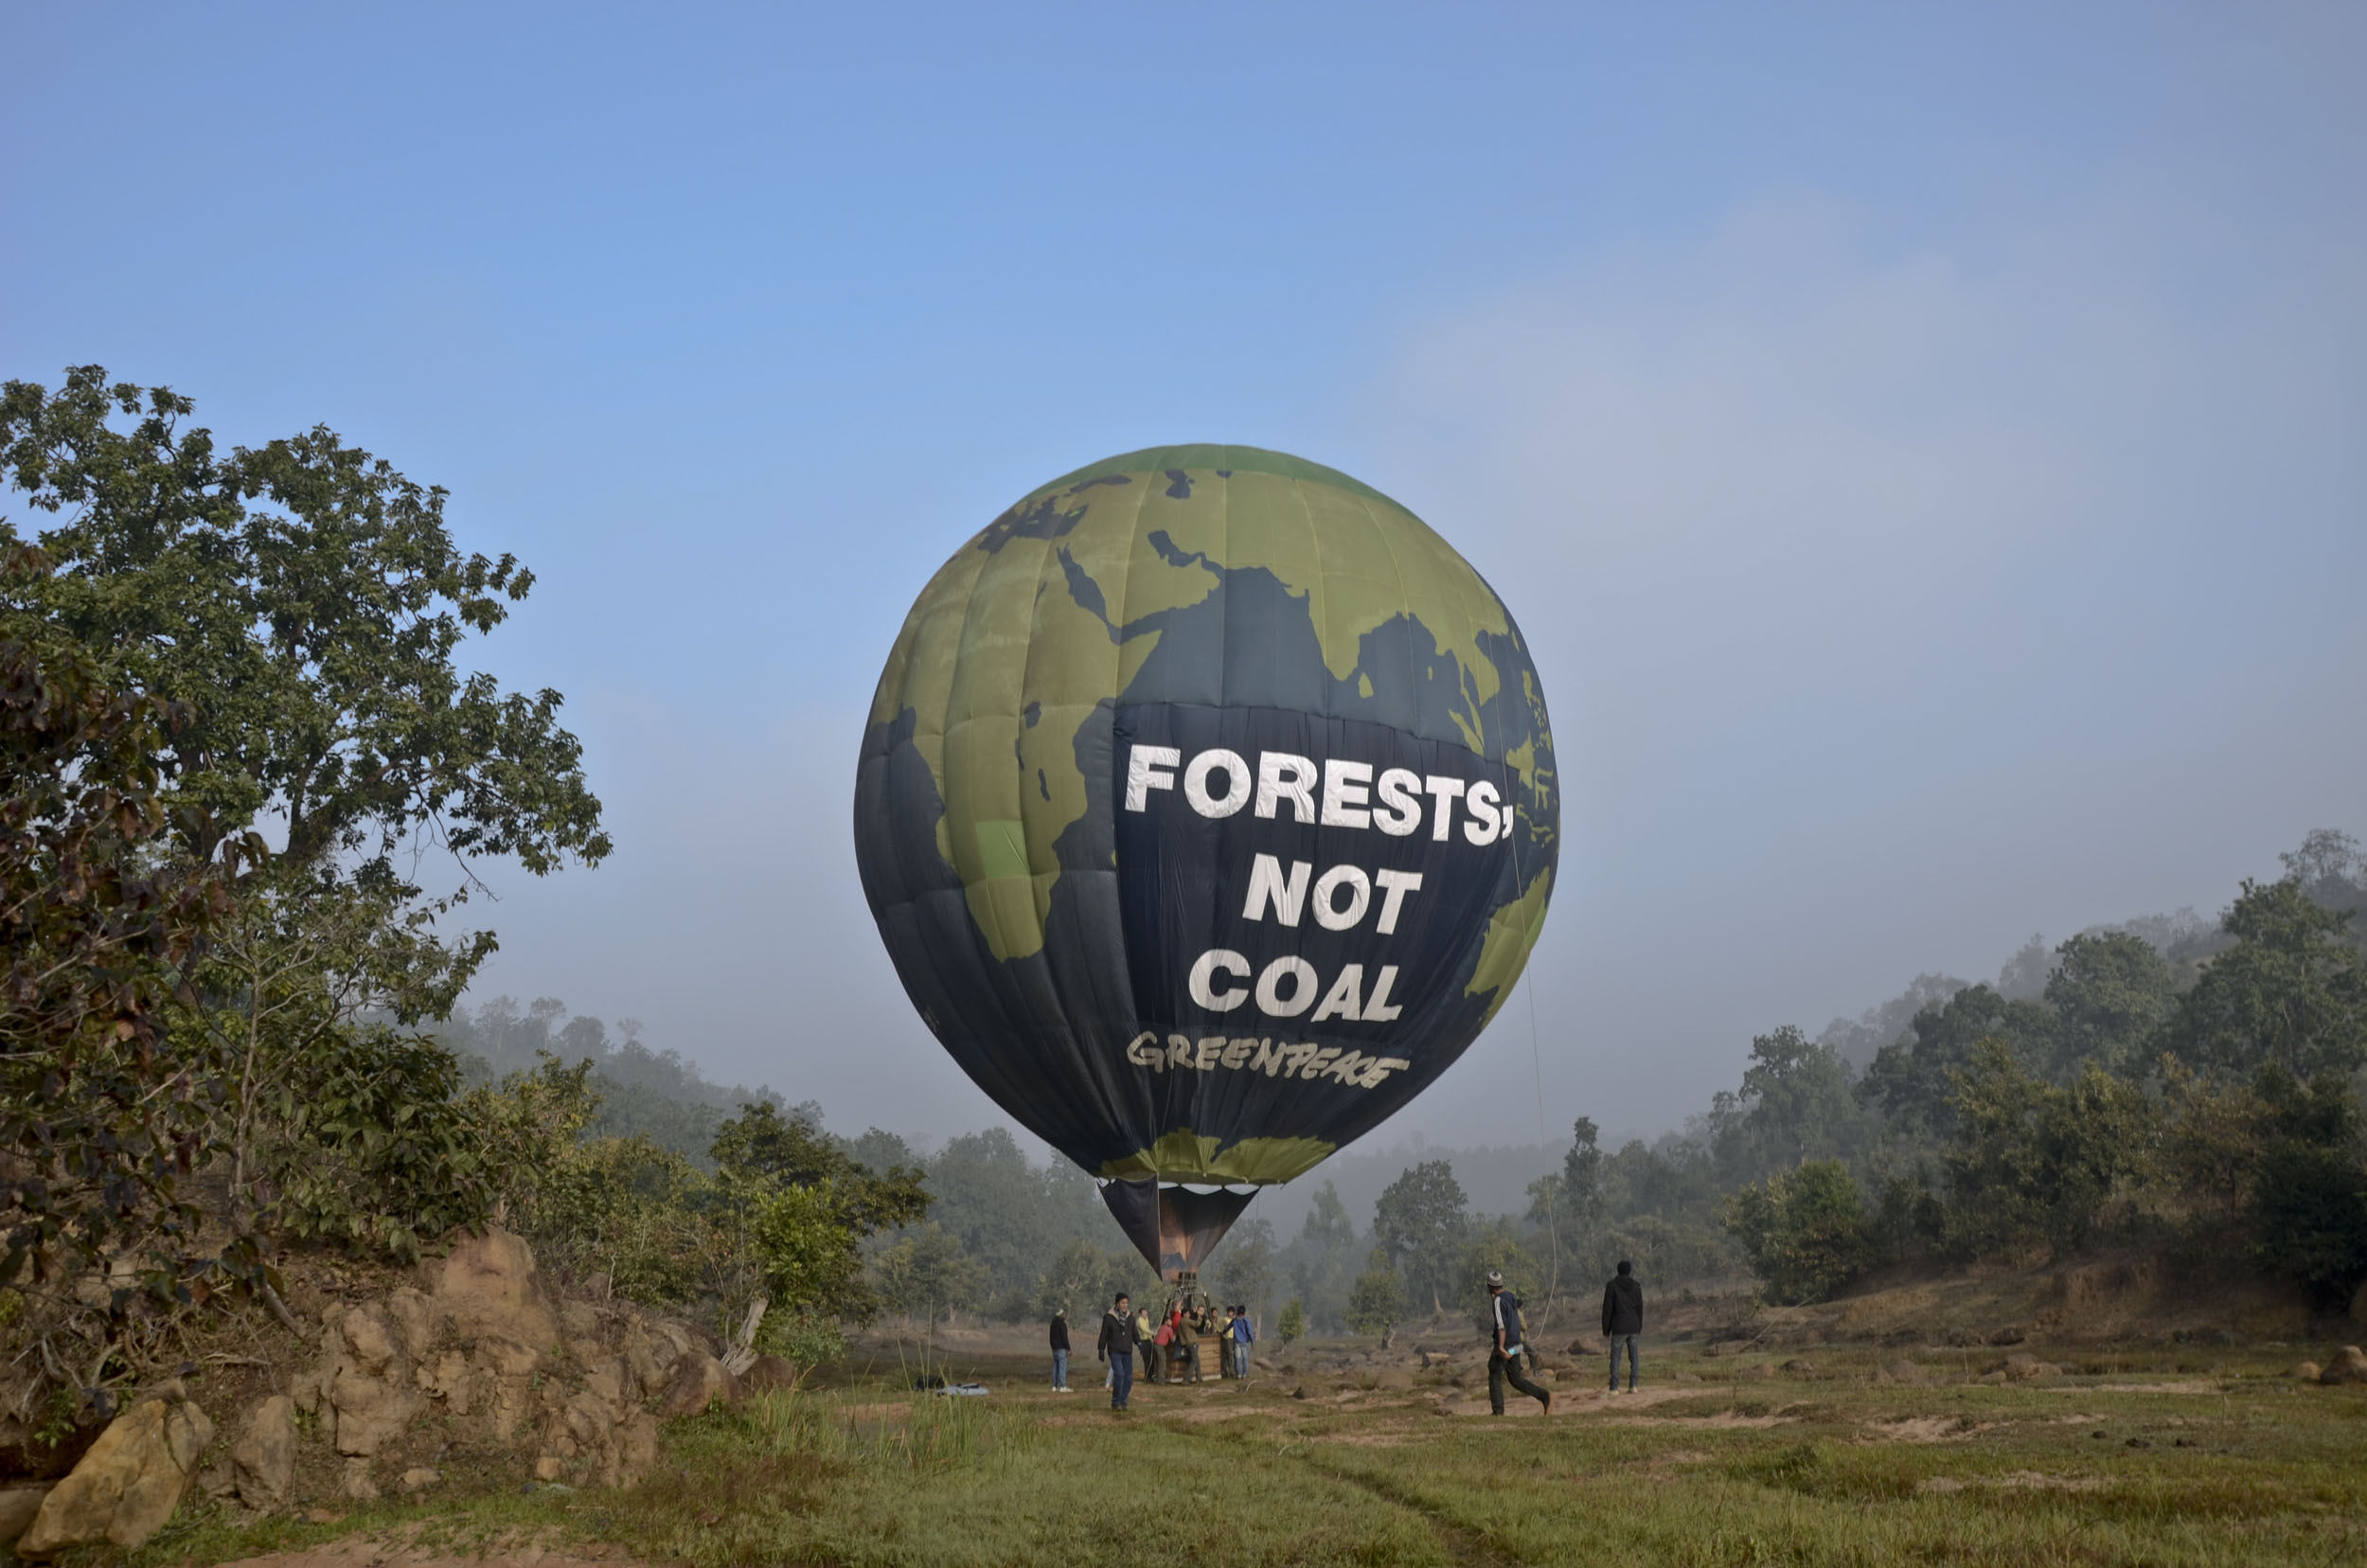 The Greenpeace balloon is prepared to fly over forests in Mahaan in Singrauli, located in the central Indian state of Madhya Pradesh. Indian film actor Abhay Deol will board one of the balloons to speak to the media and to highlight the threat to the pristine forests in Mahaan from coal mining.